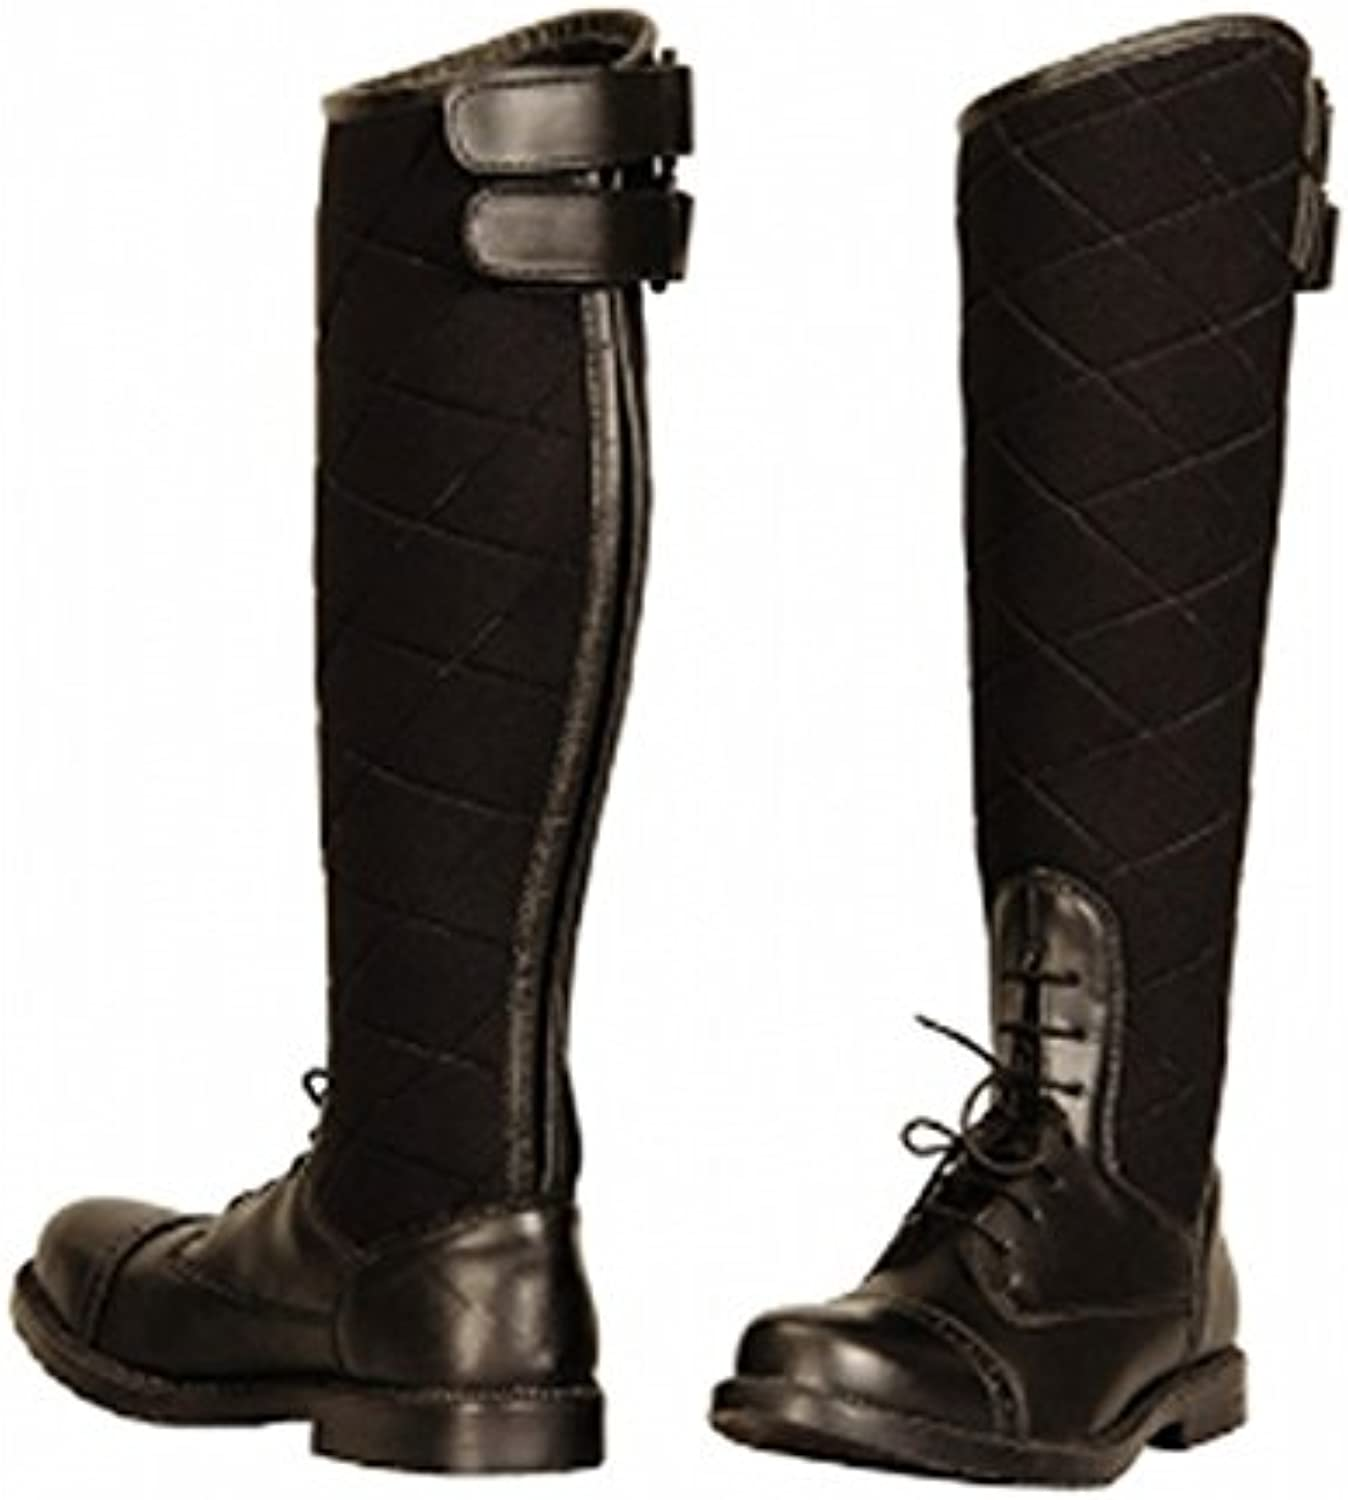 tuffrider Damen Alpine gesteppt Field Boots in Synthetik Leder